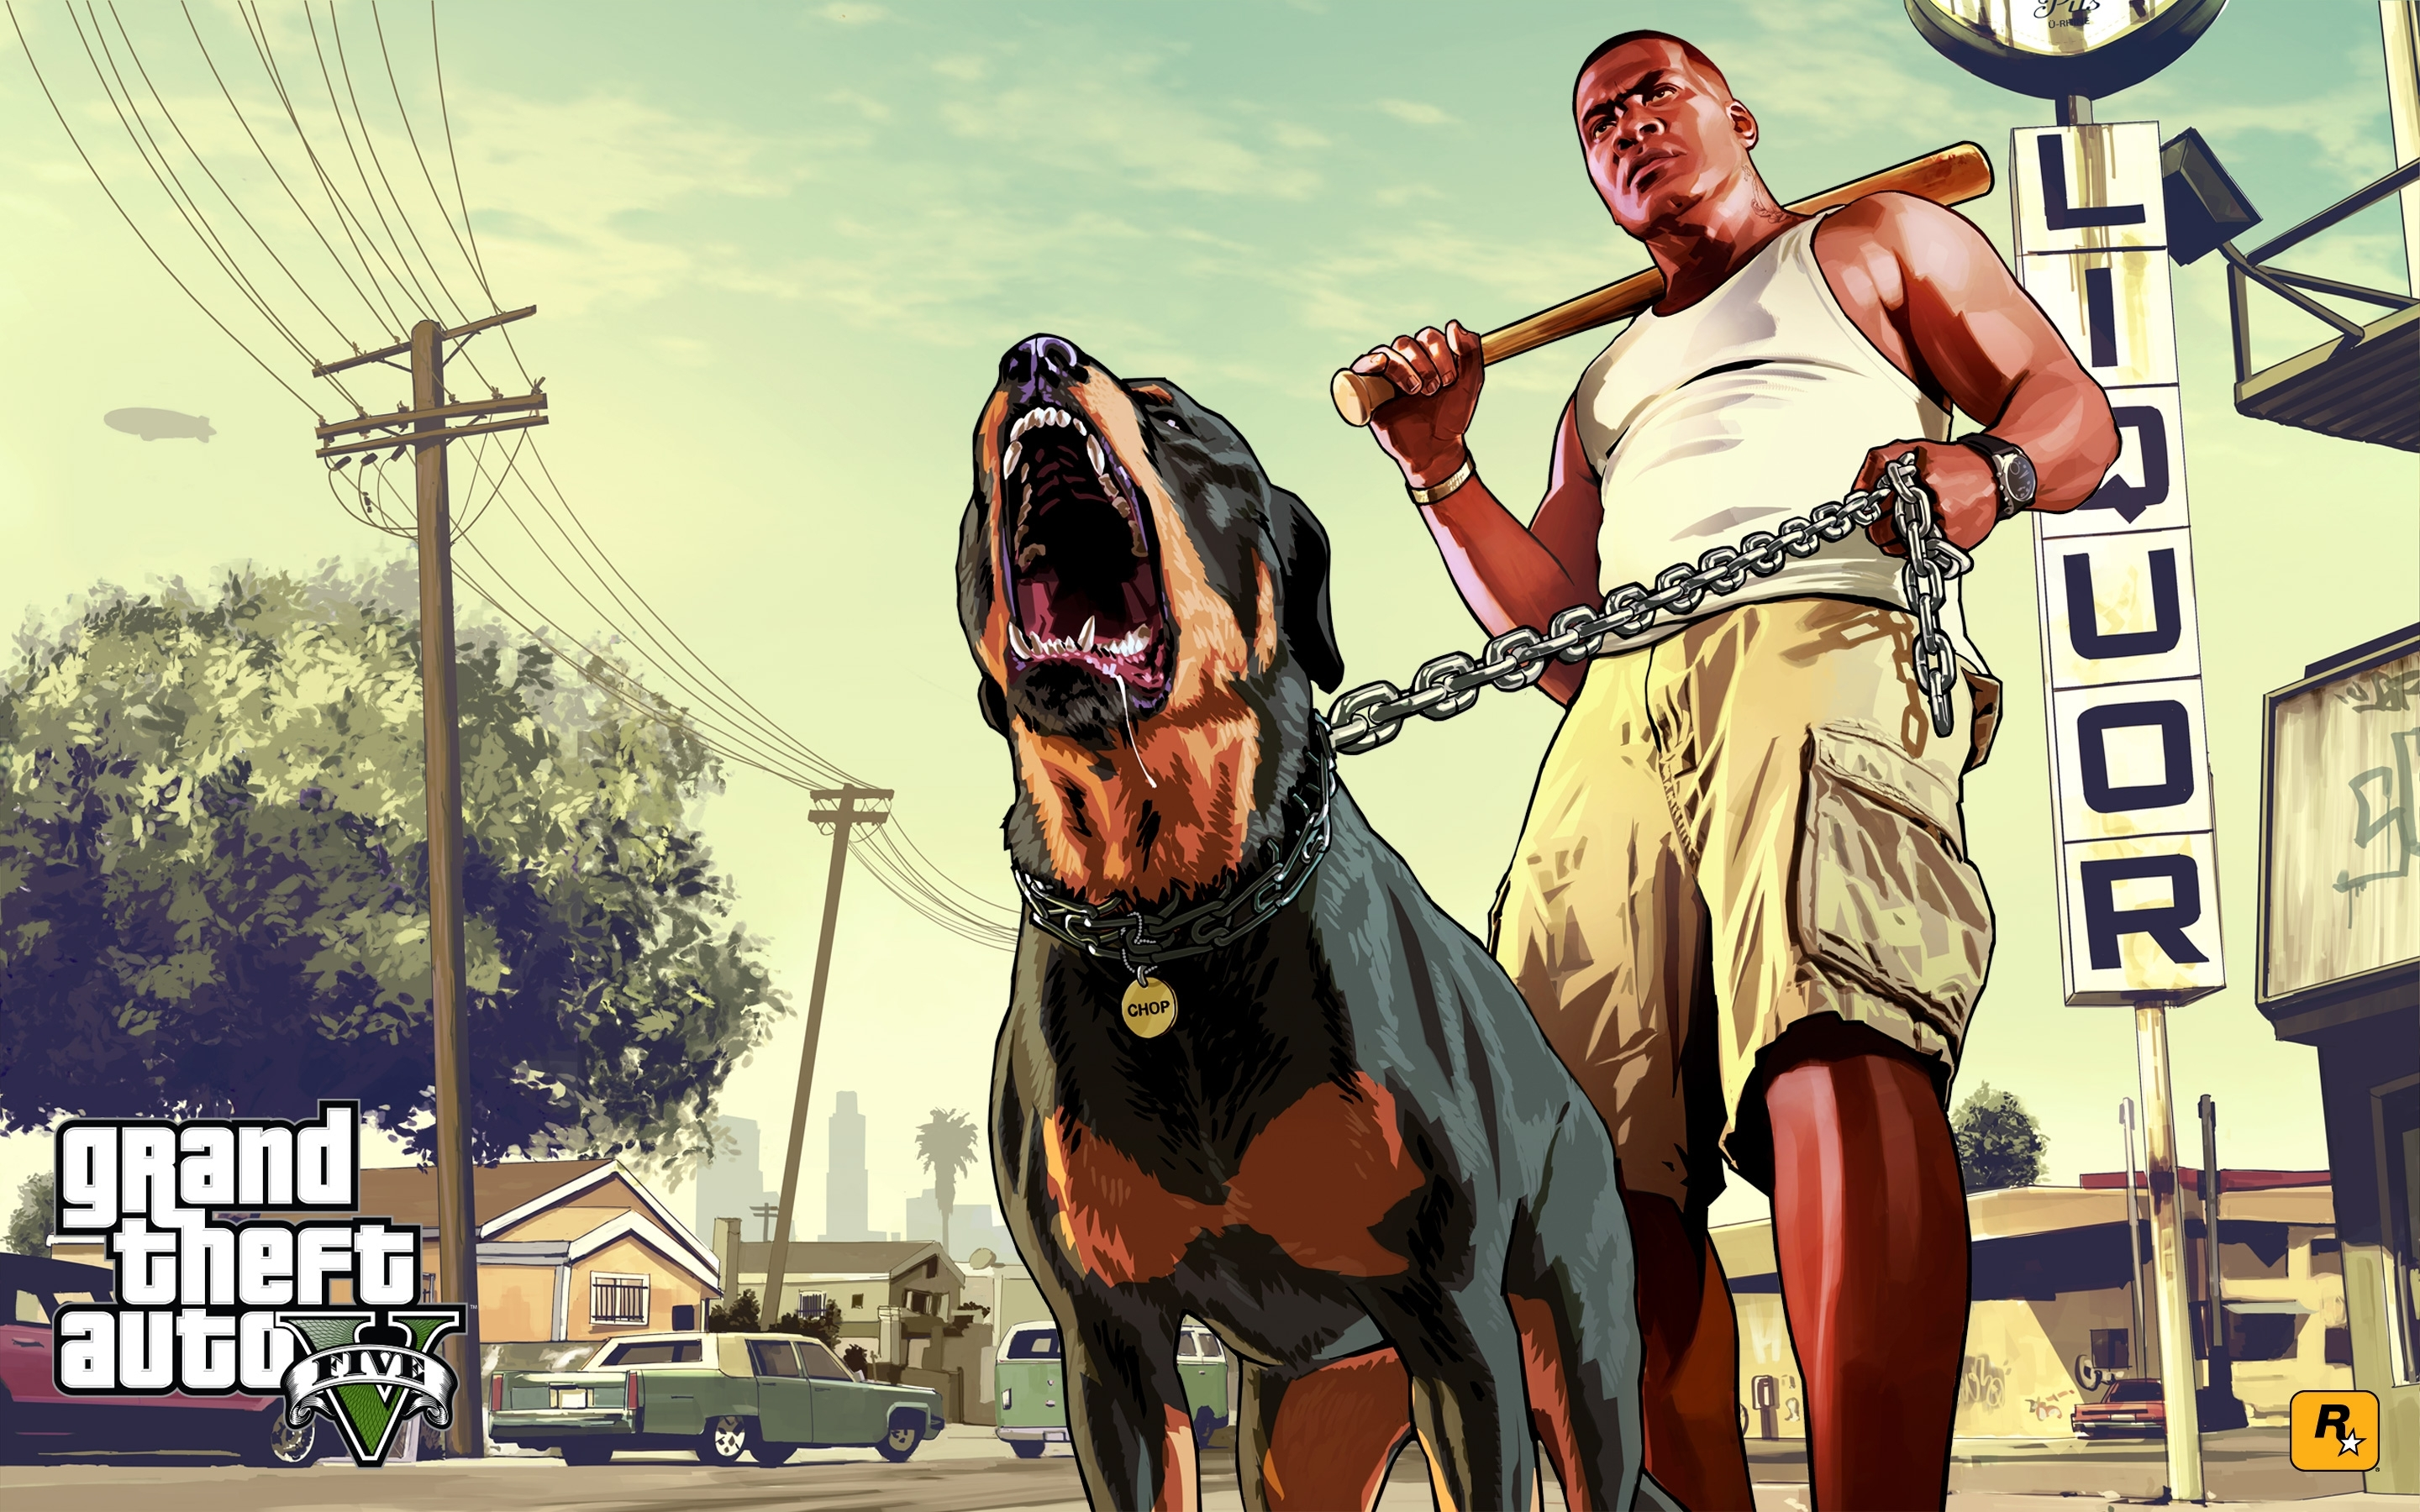 484 grand theft auto v hd wallpapers | background images - wallpaper